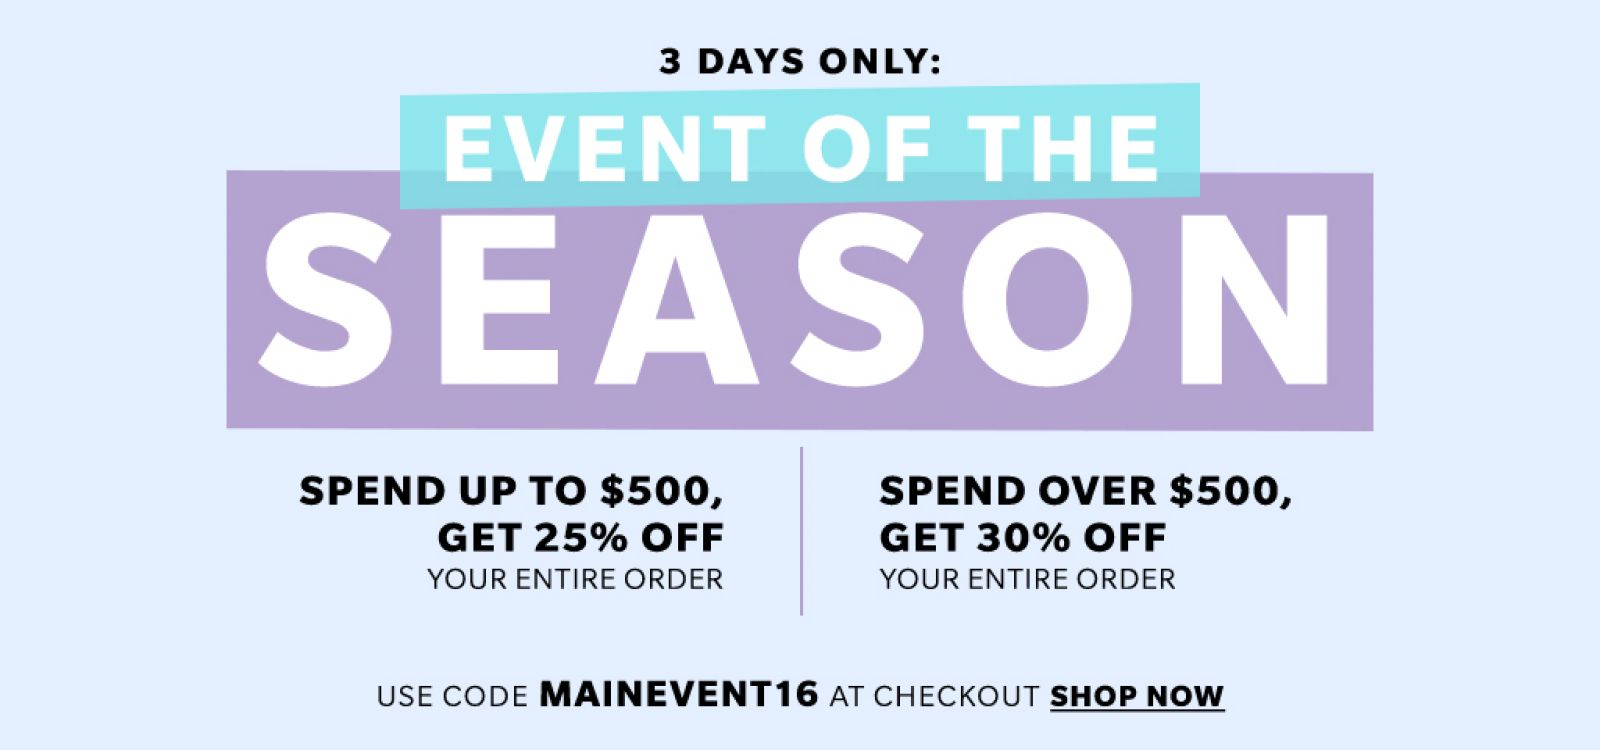 Event of the season – SHOPBOP SALE – get up to 30% off your order